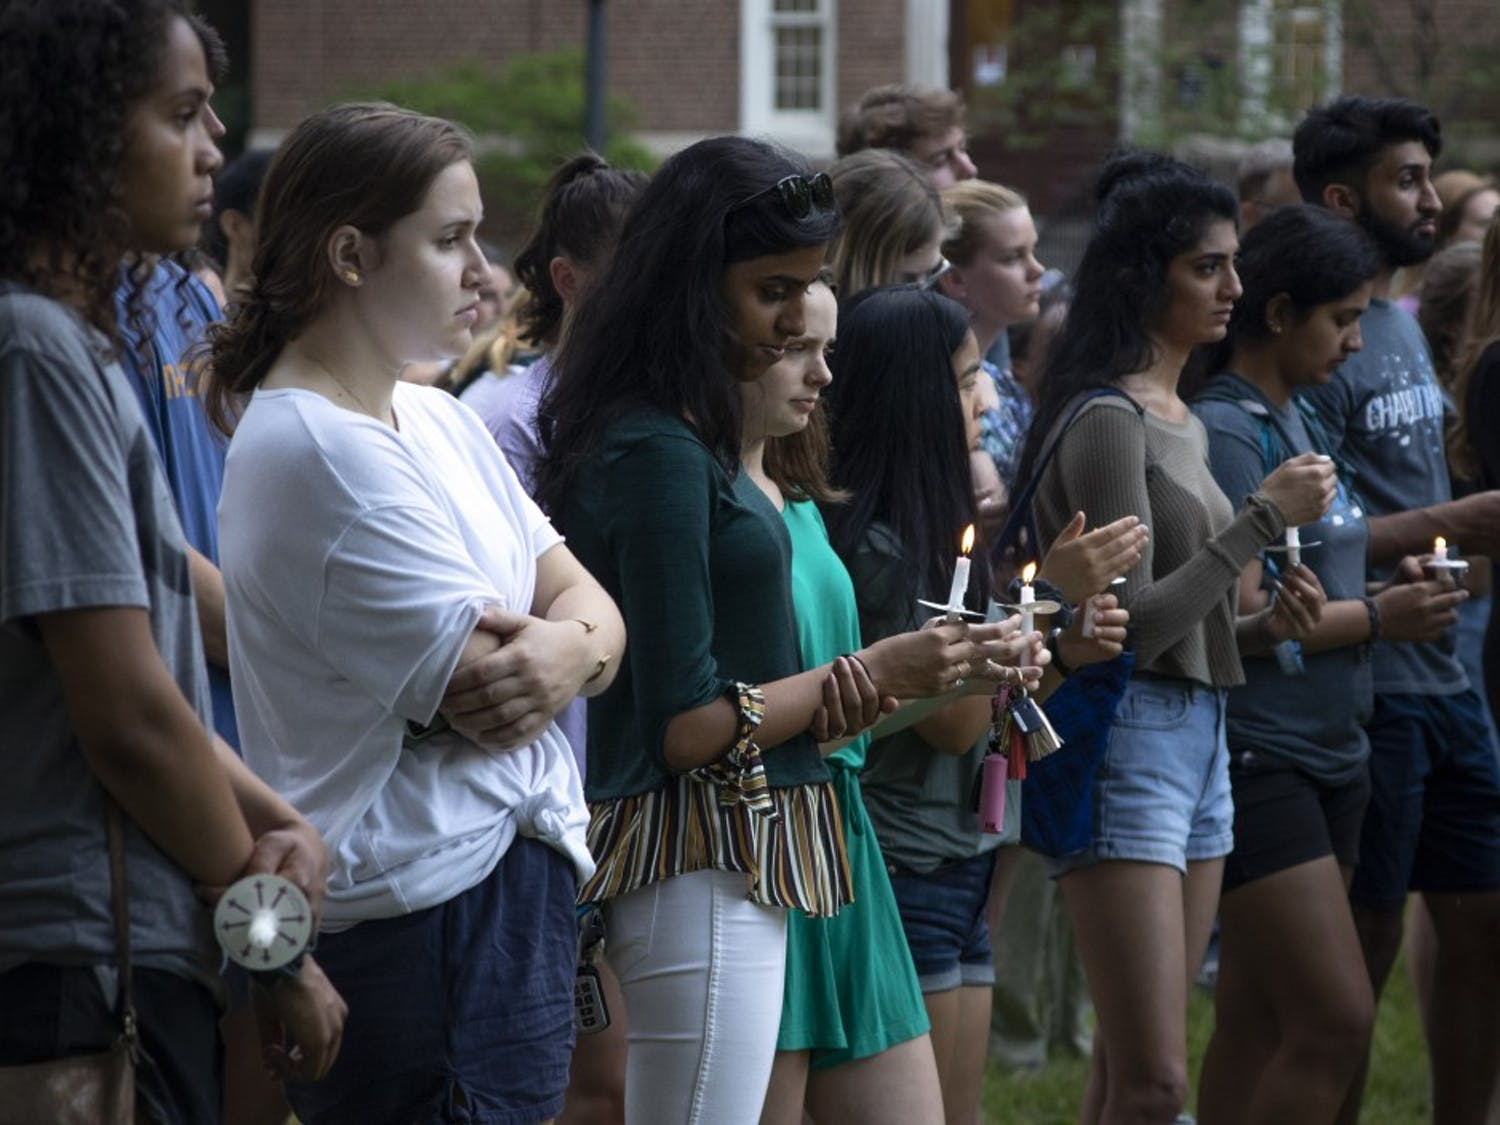 Students and community members gathered on Polk Place Friday evening for a candlelight vigil held in response to the shooting that occurred at UNC Charlotte Tuesday.